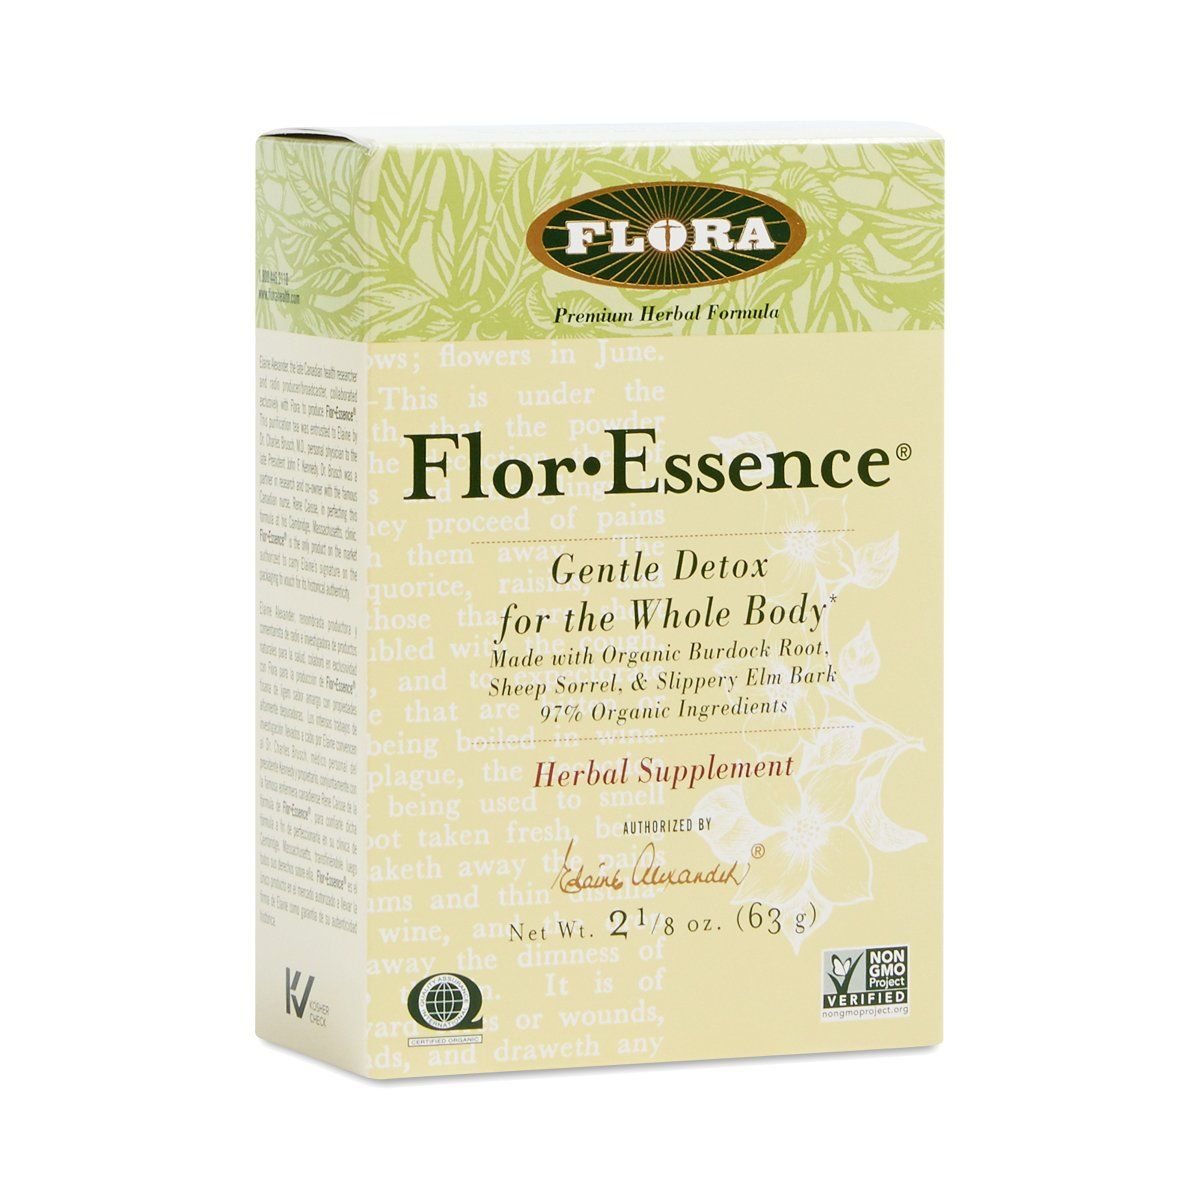 Flora (Udo's Choice) Flor-Essence Tea 2.2oz Powder Teas Flora (Udo's Choice)  (1057939324971)